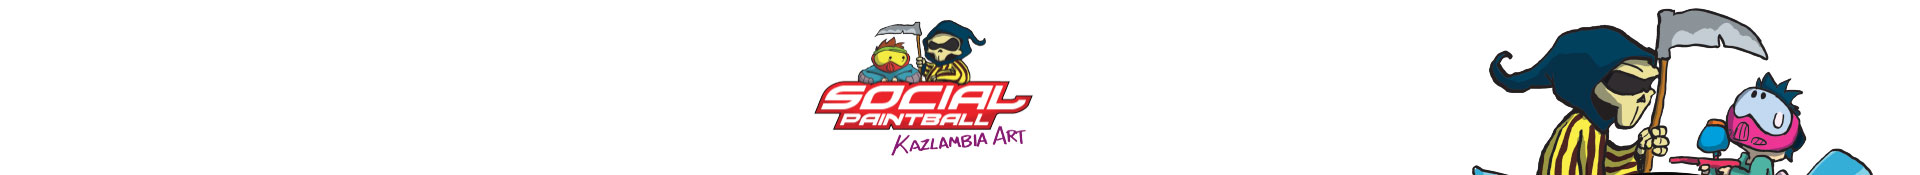 Kazlambia Art Paintball Cartoon by Social Paintball